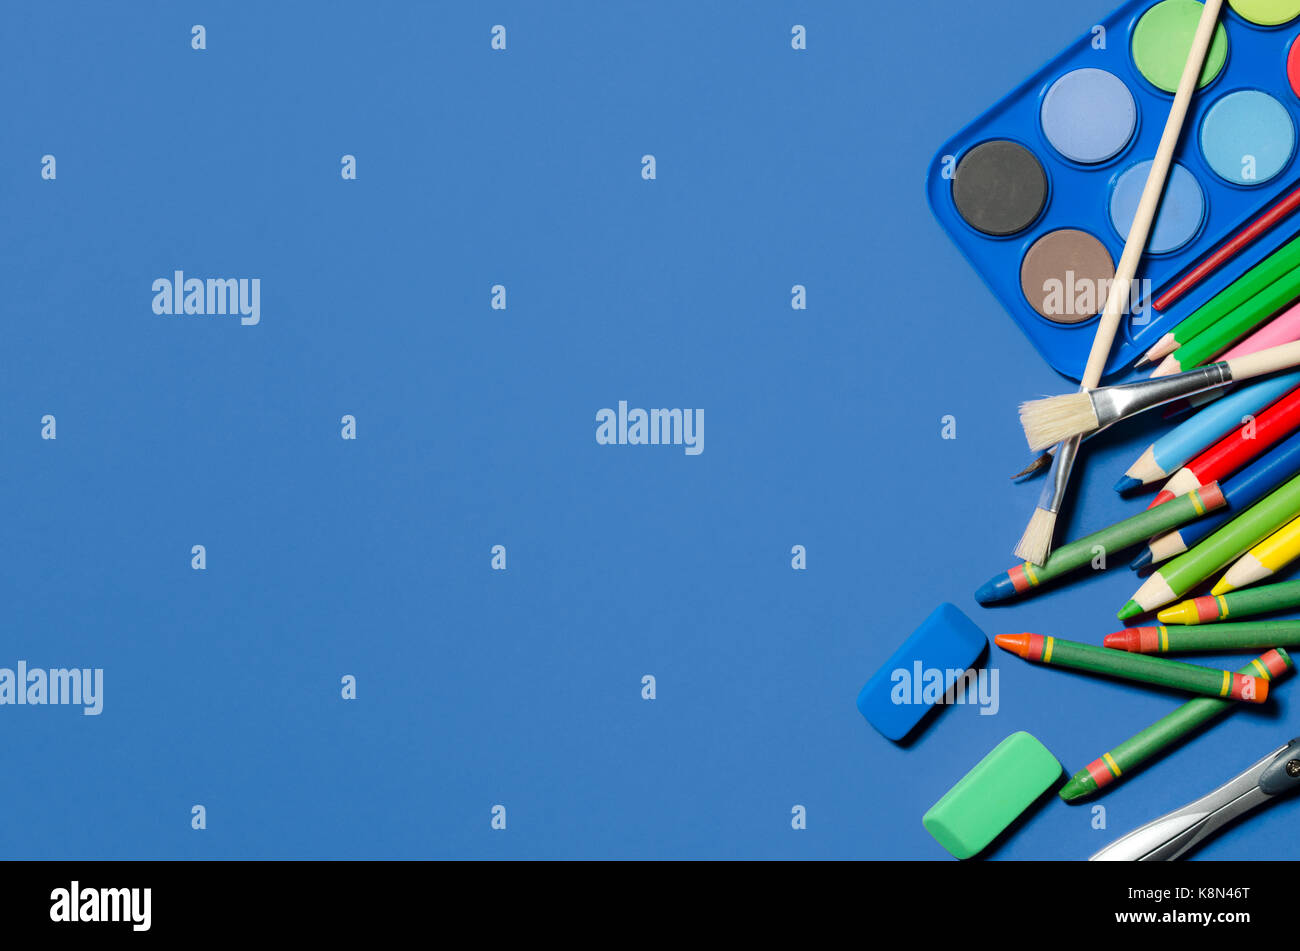 School and office stationery, blue background, copyspace. stationery office desk top view table school student concept - Stock Image